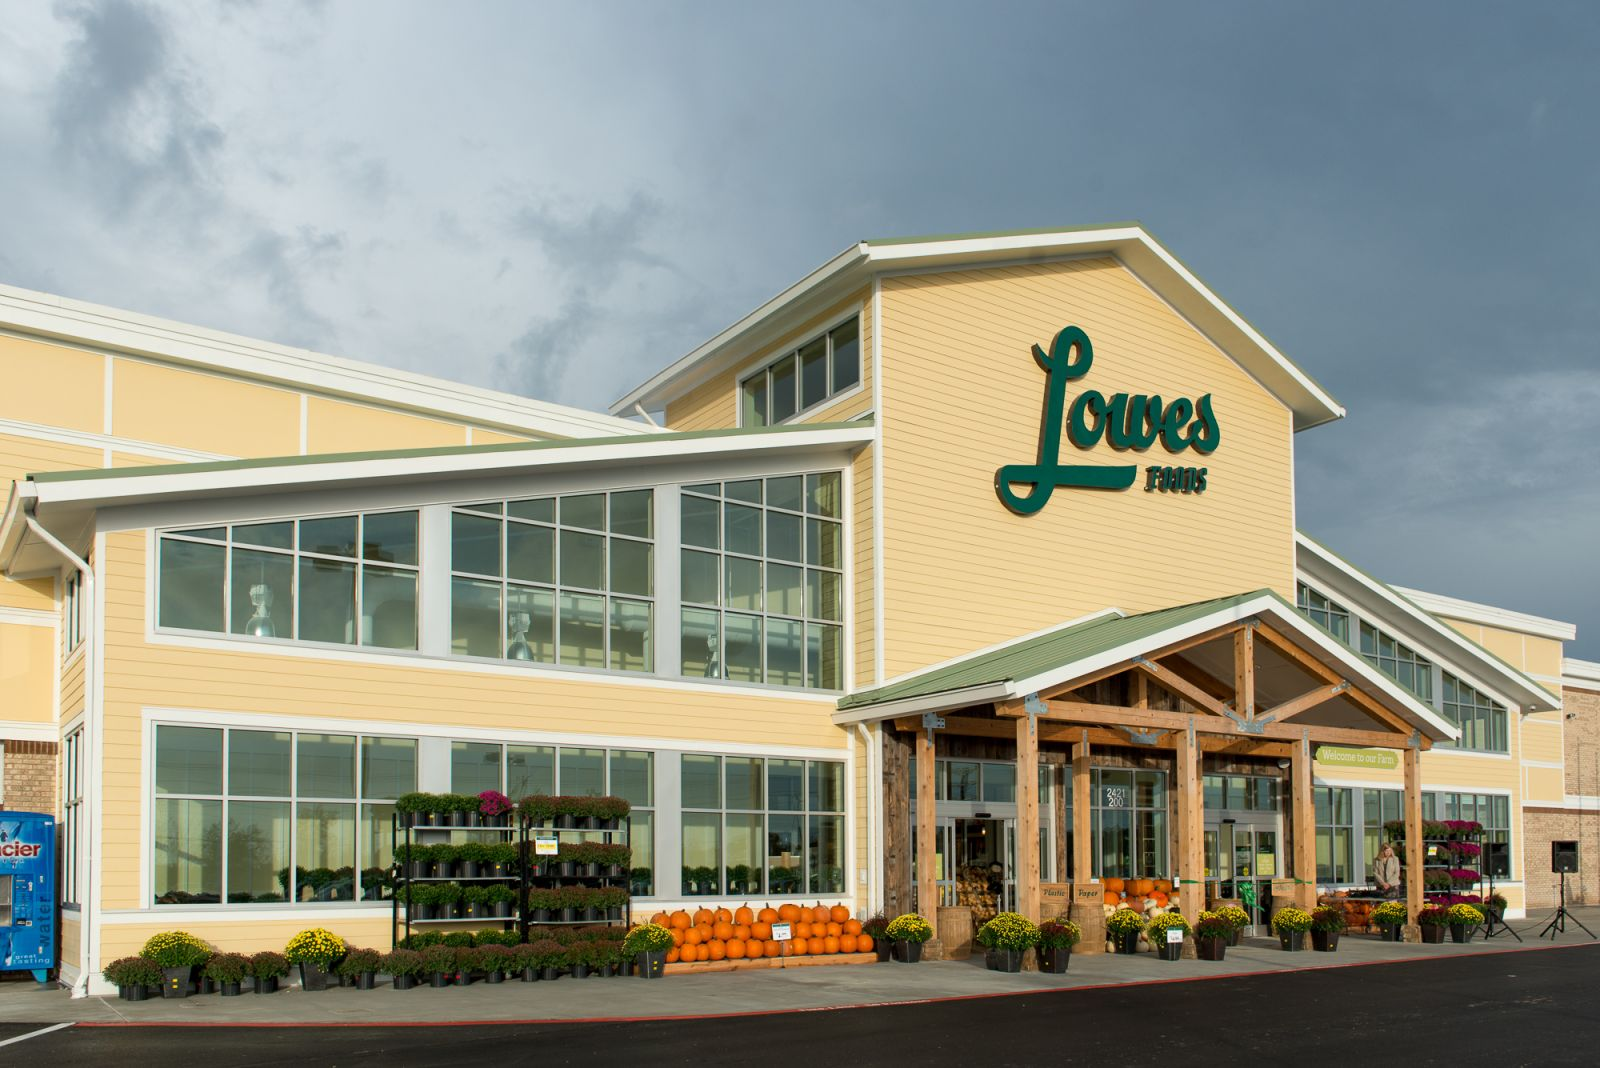 Lowes Foods is headquartered in Winston-Salem, N.C., and has 95 locations in North and South Carolina and Virginia. (Photo/Provided)